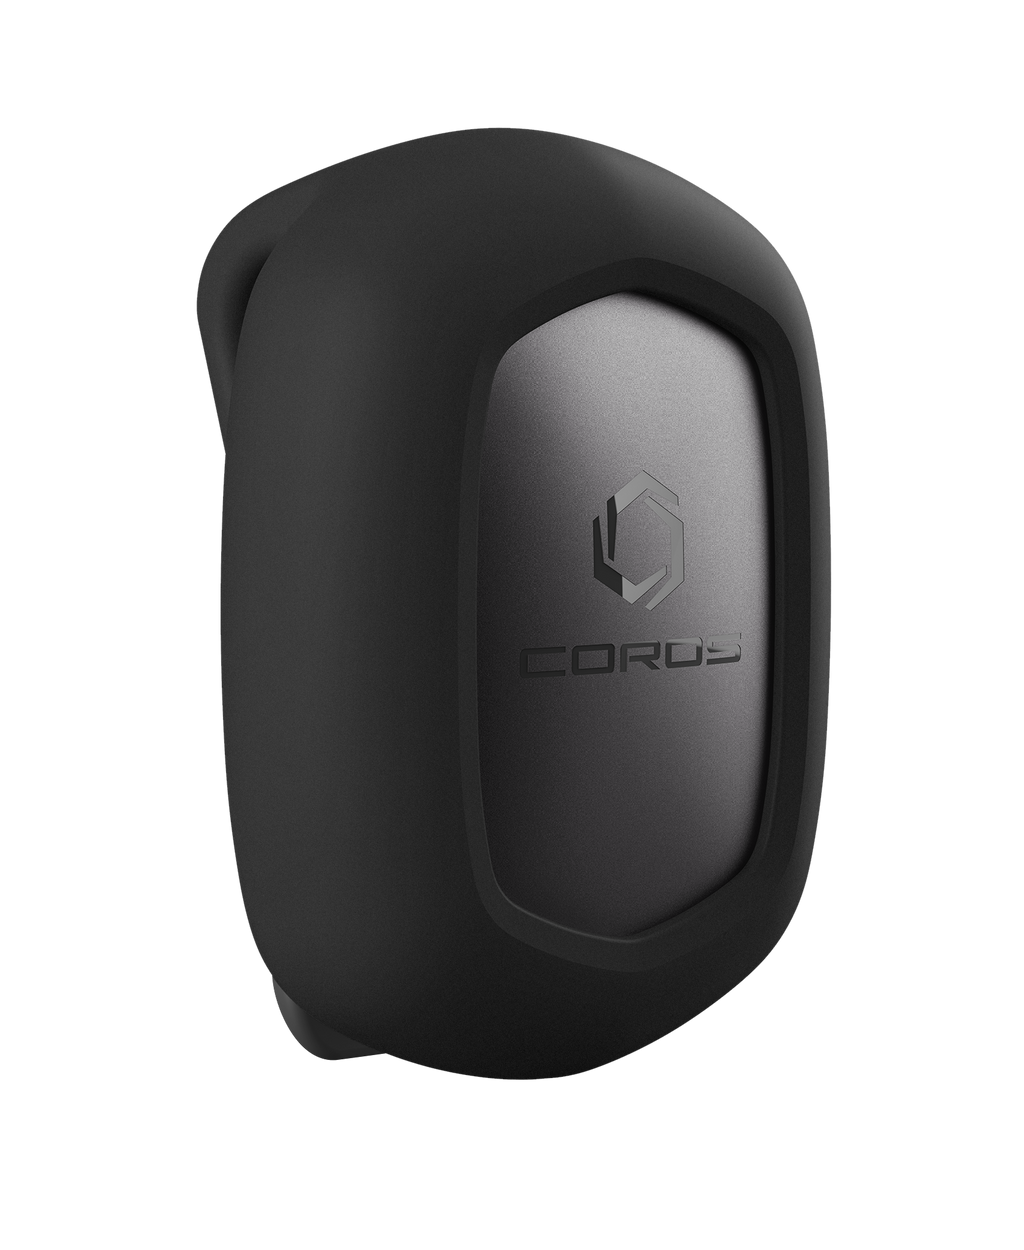 COROS POD (Performace Optimization Device)